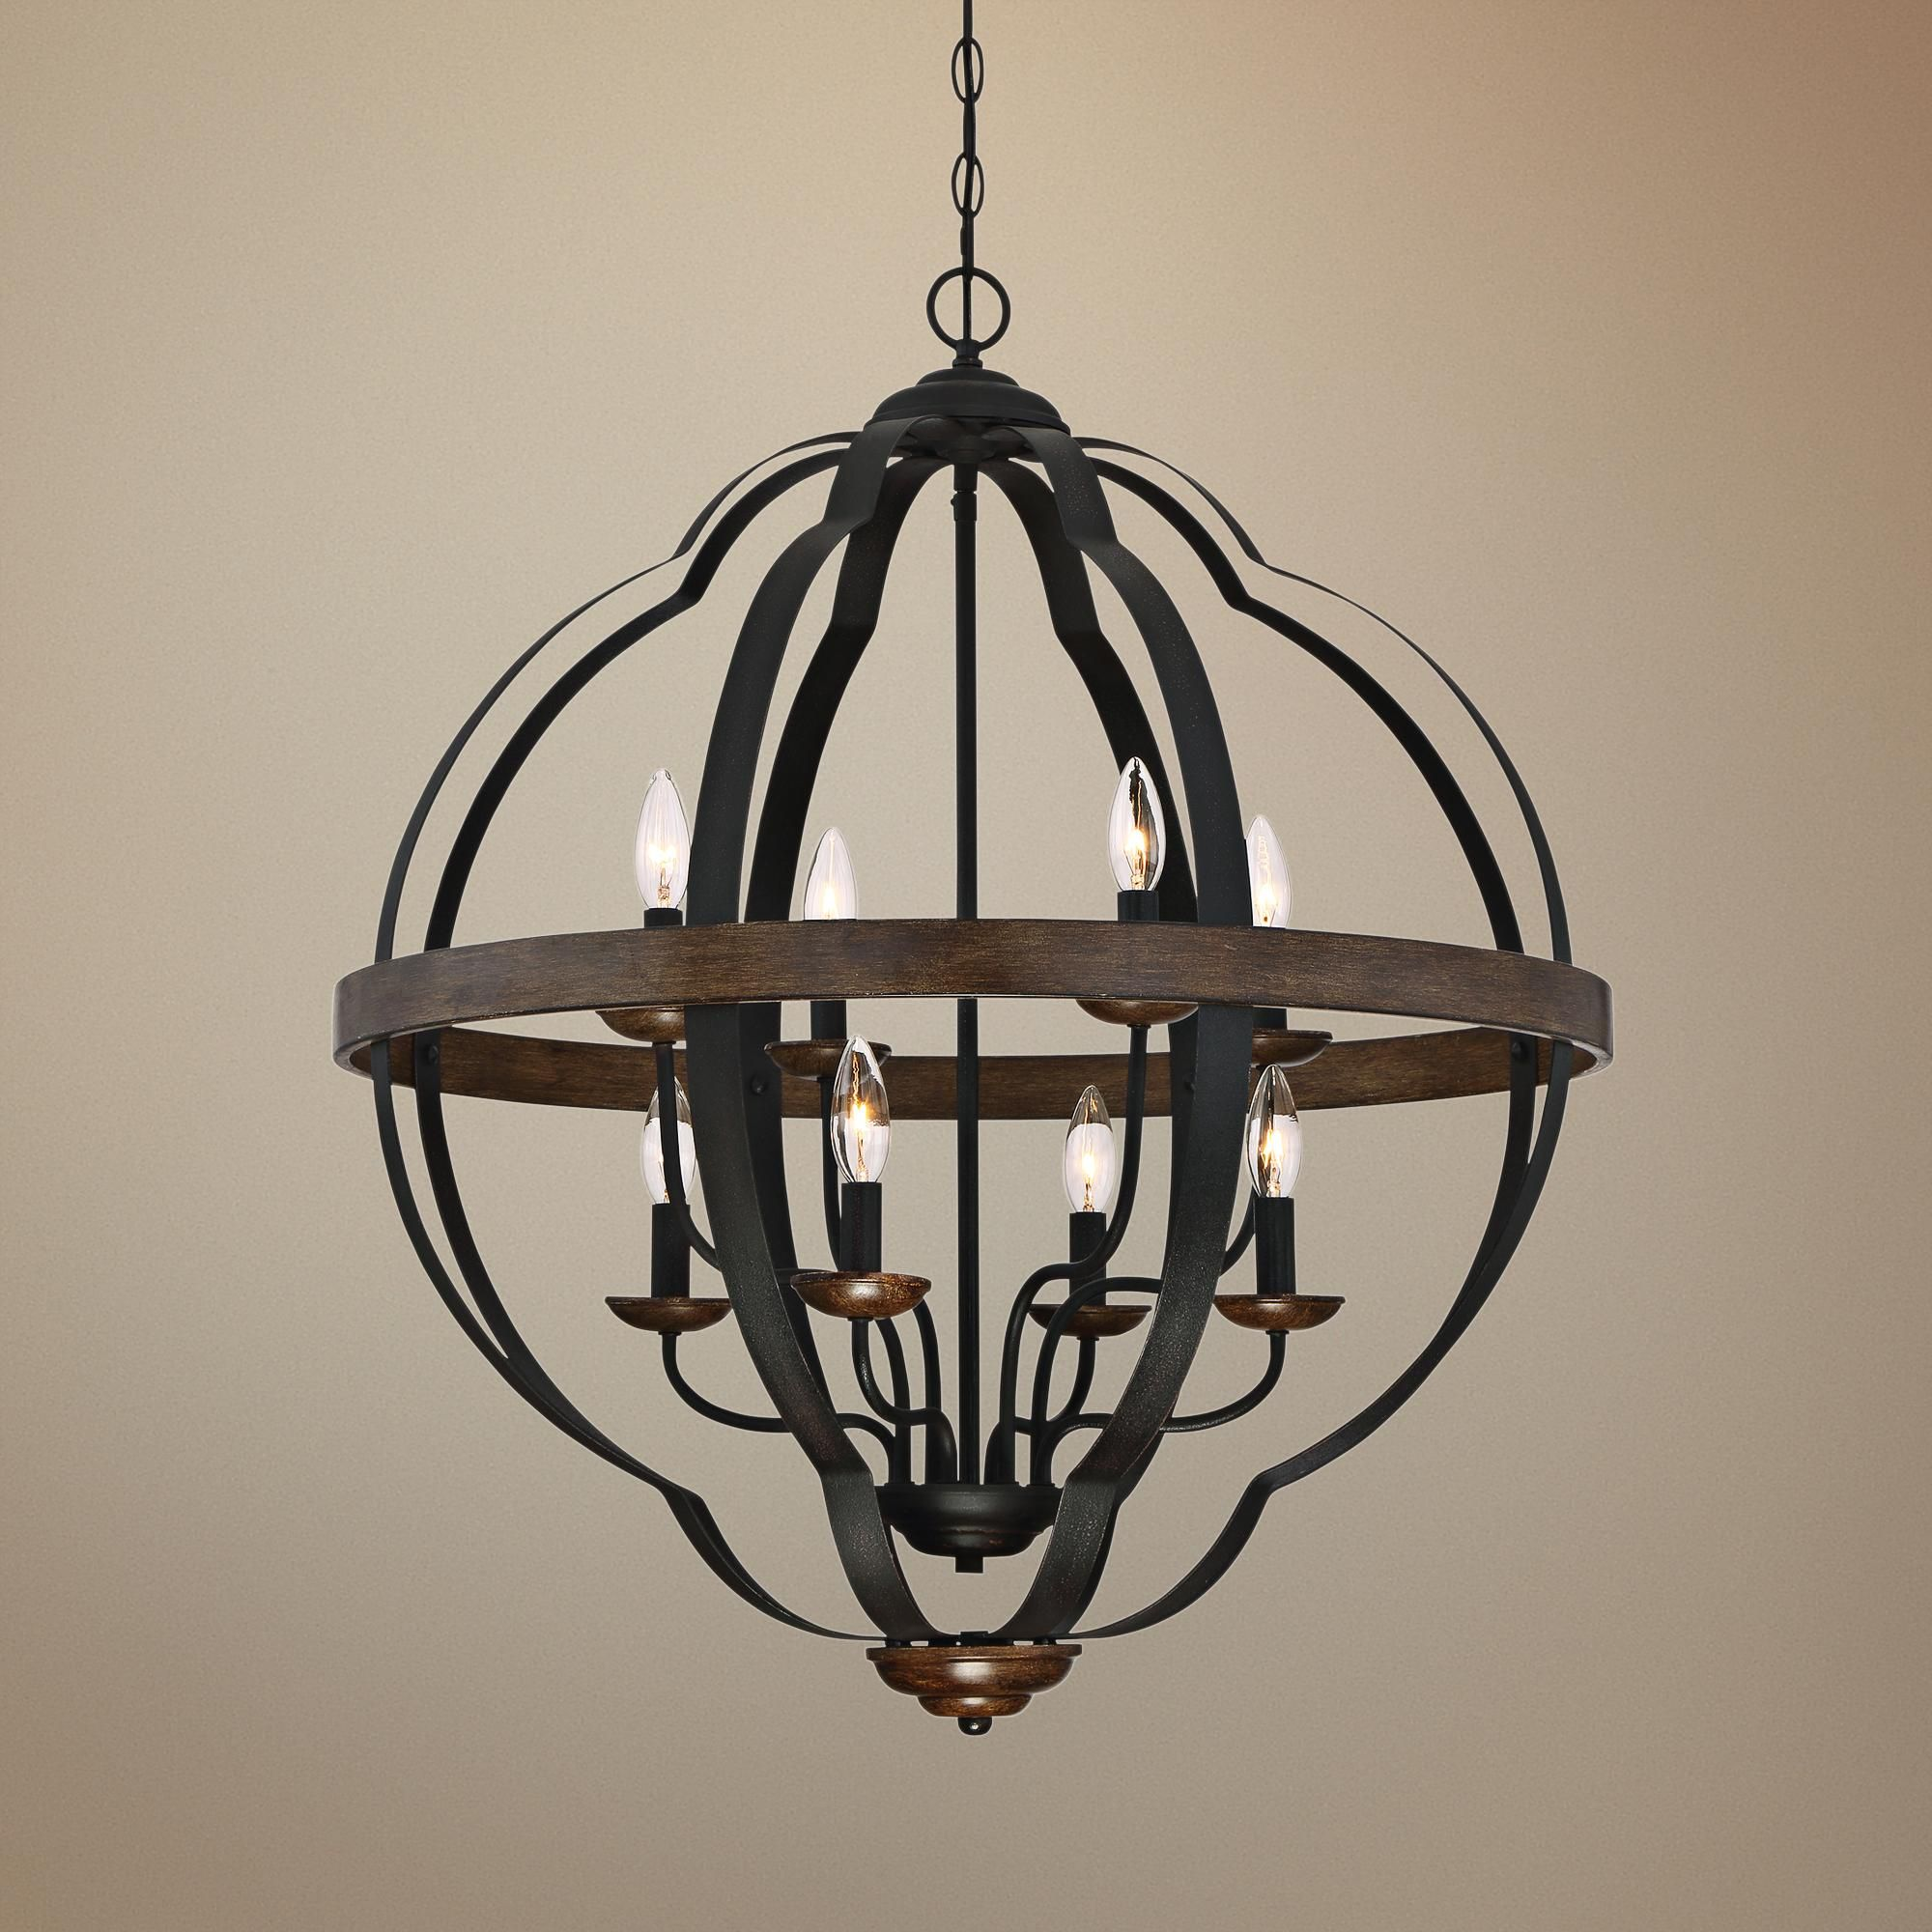 "Quoizel Siren 28""W 8 Light Black Metal Cage Foyer Chandelier"